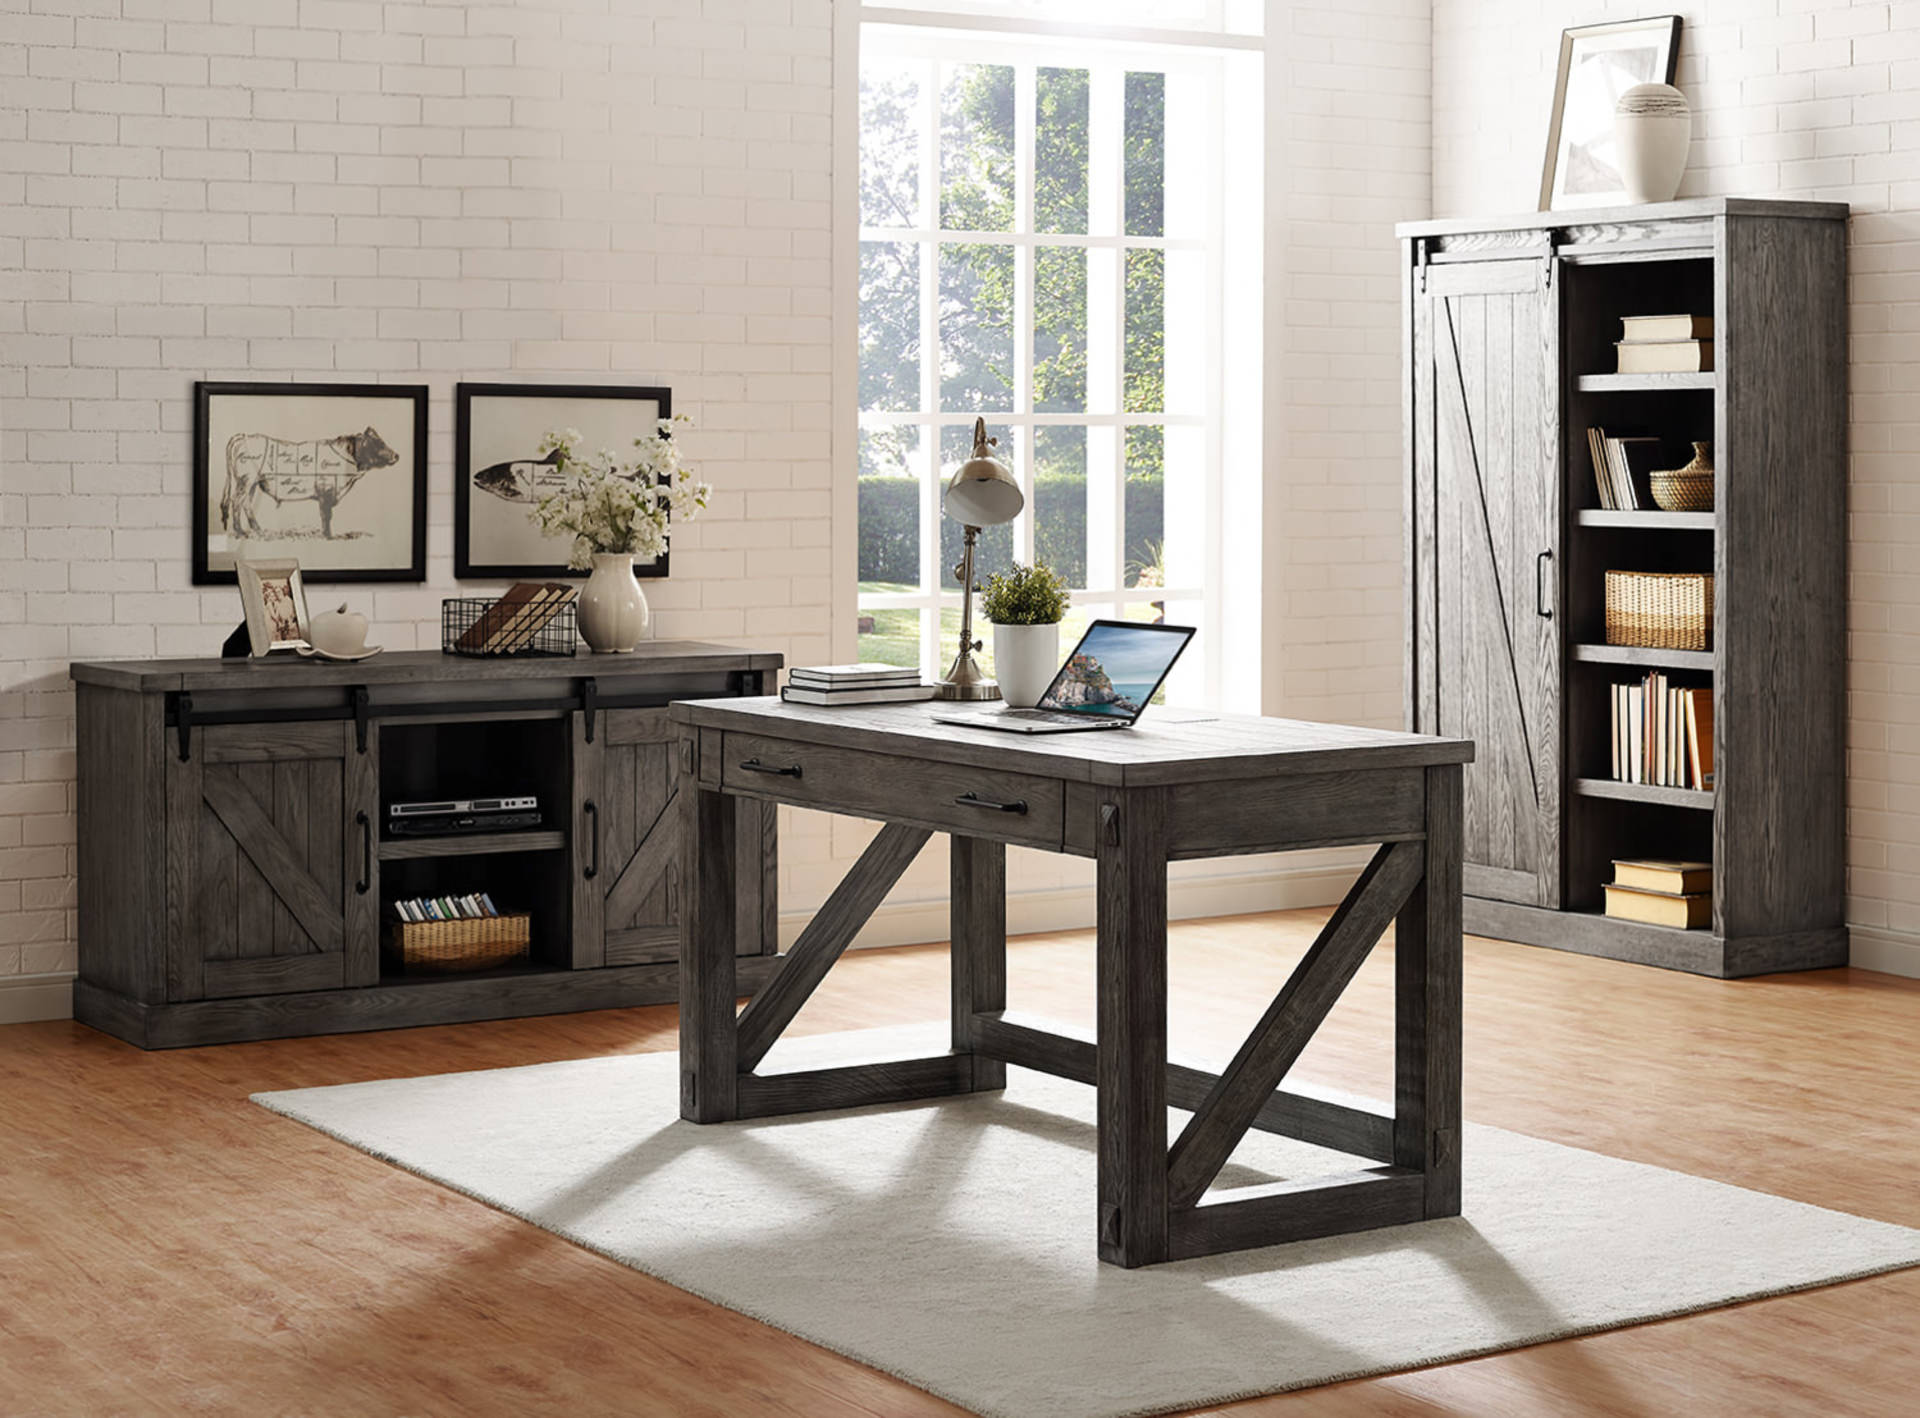 Choose A Desk That Fits Your Space And Provides The